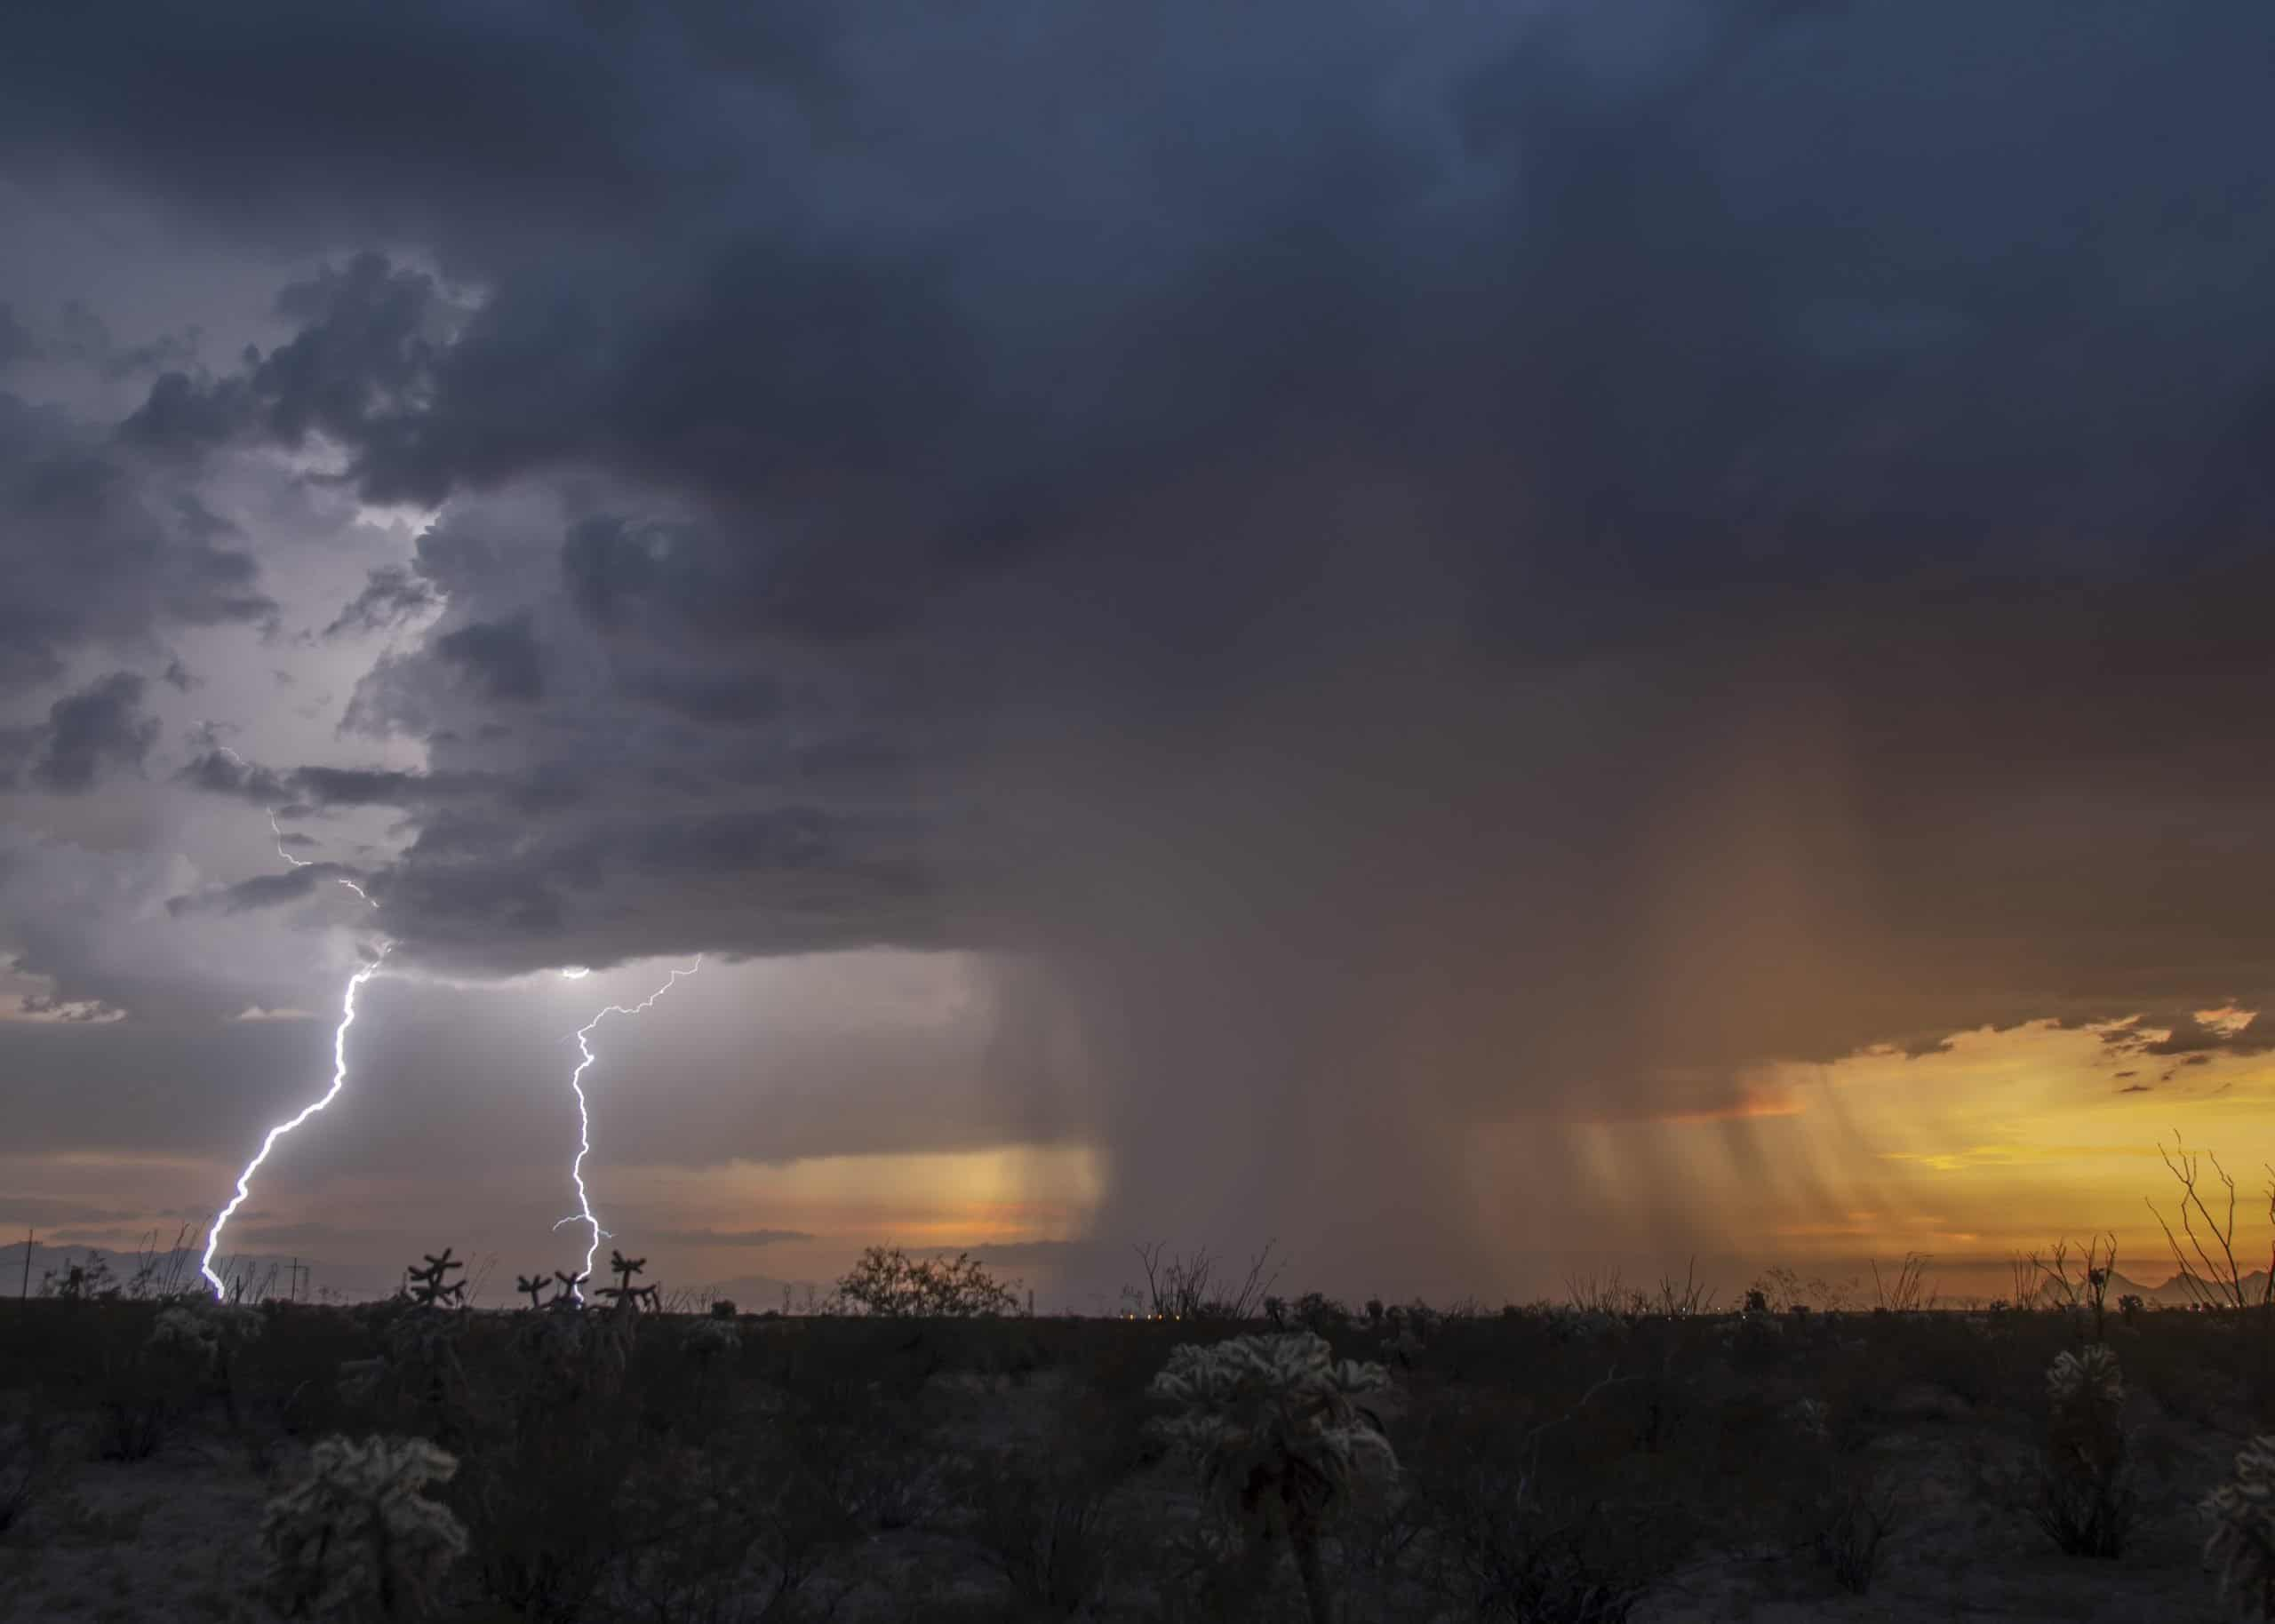 arizona monsoon thunderstorm with rain and lightning